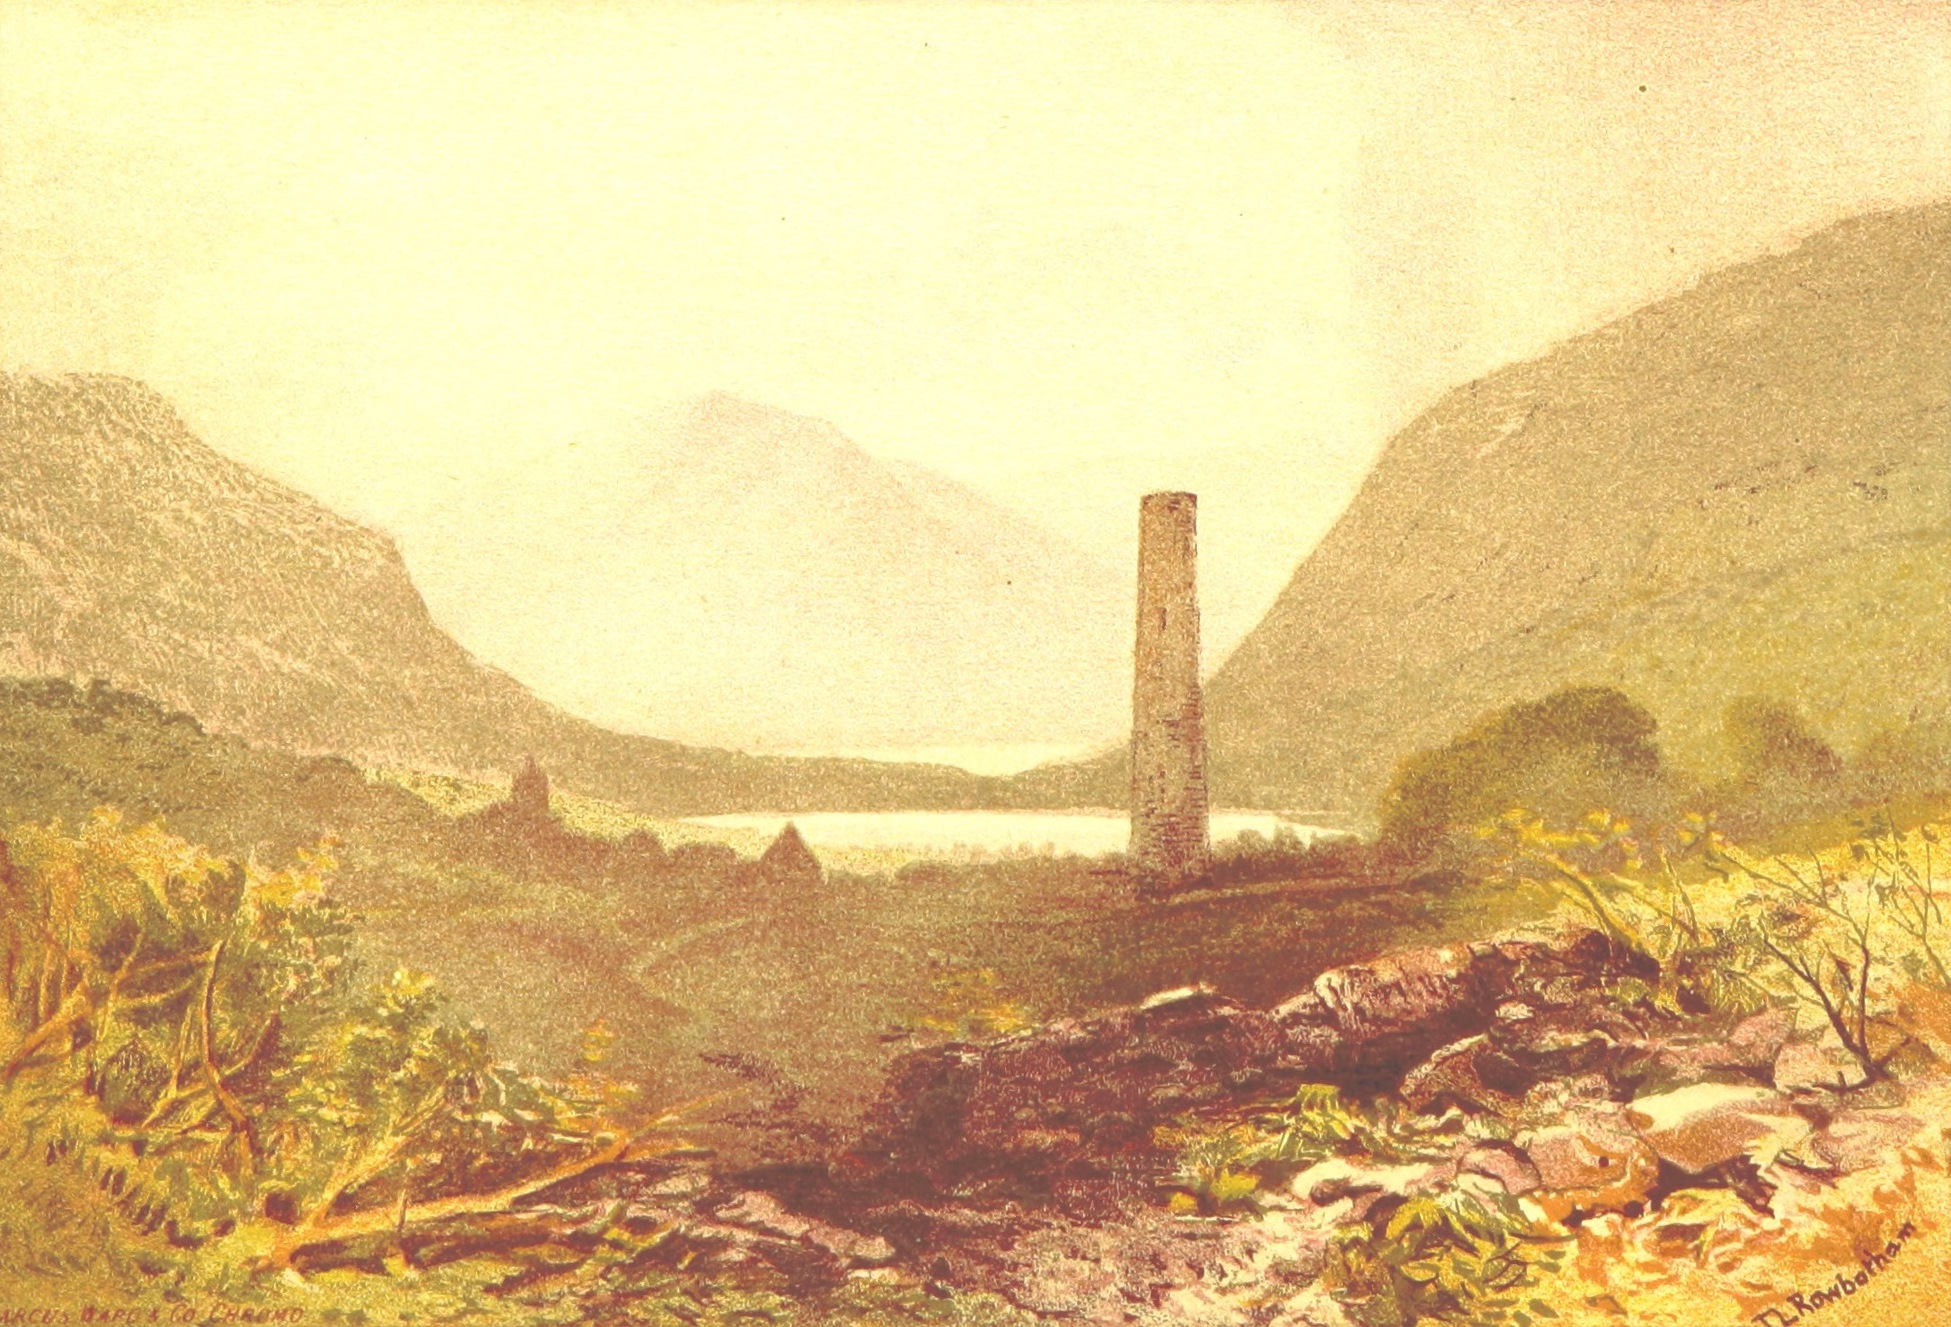 Views of Wicklow and Killarney - Glendalough and Seven Churches (1875)